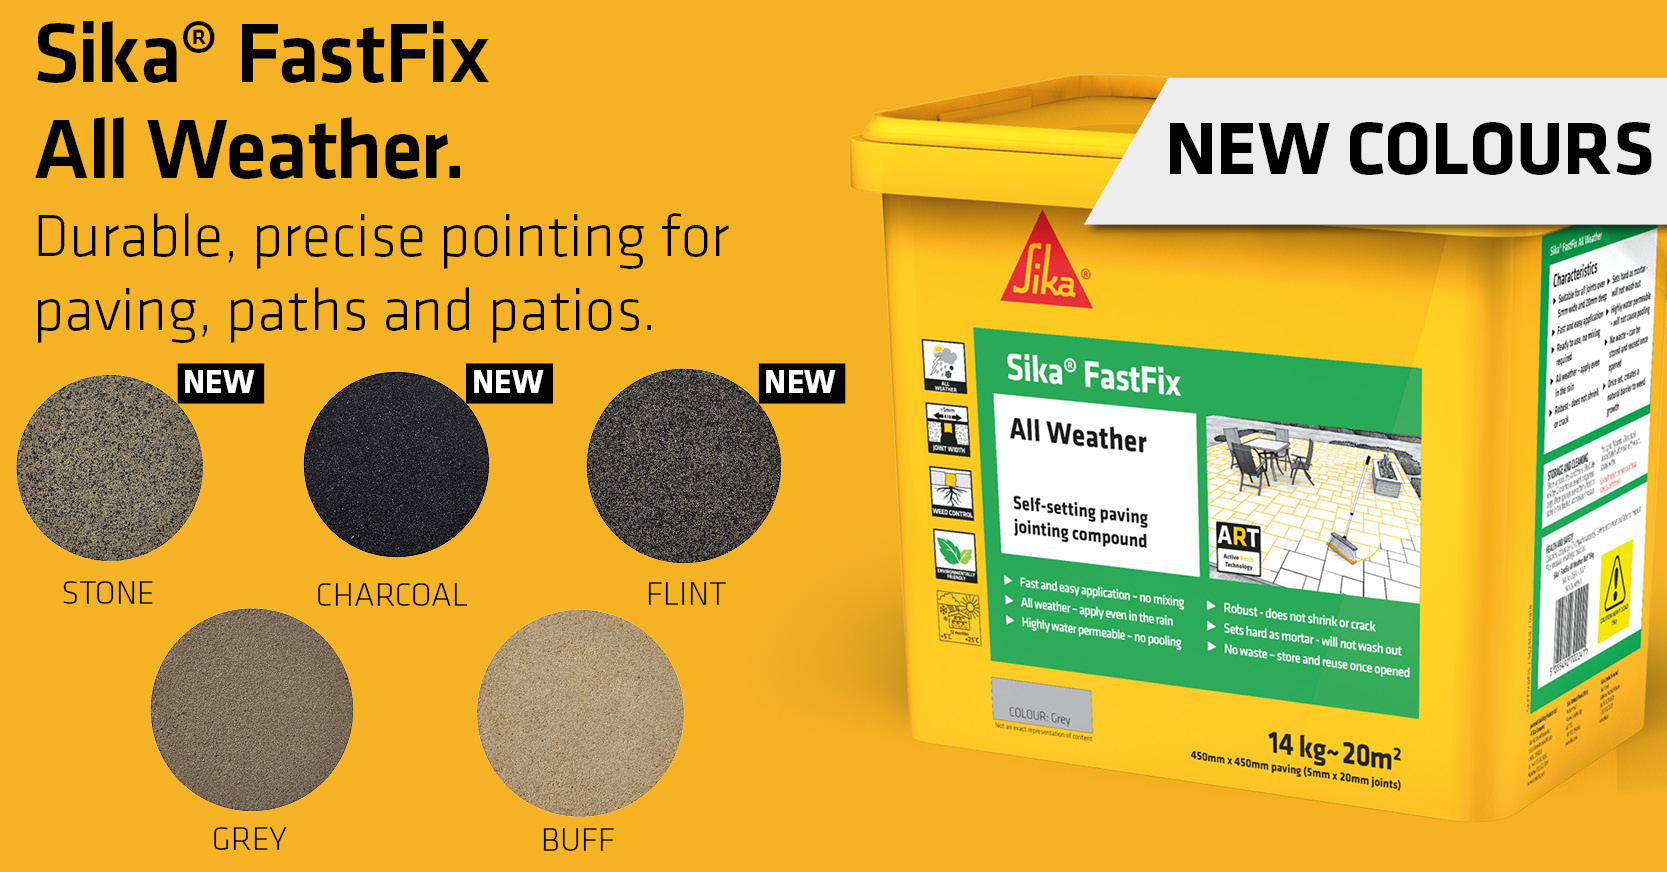 FastFix paving jointing compound